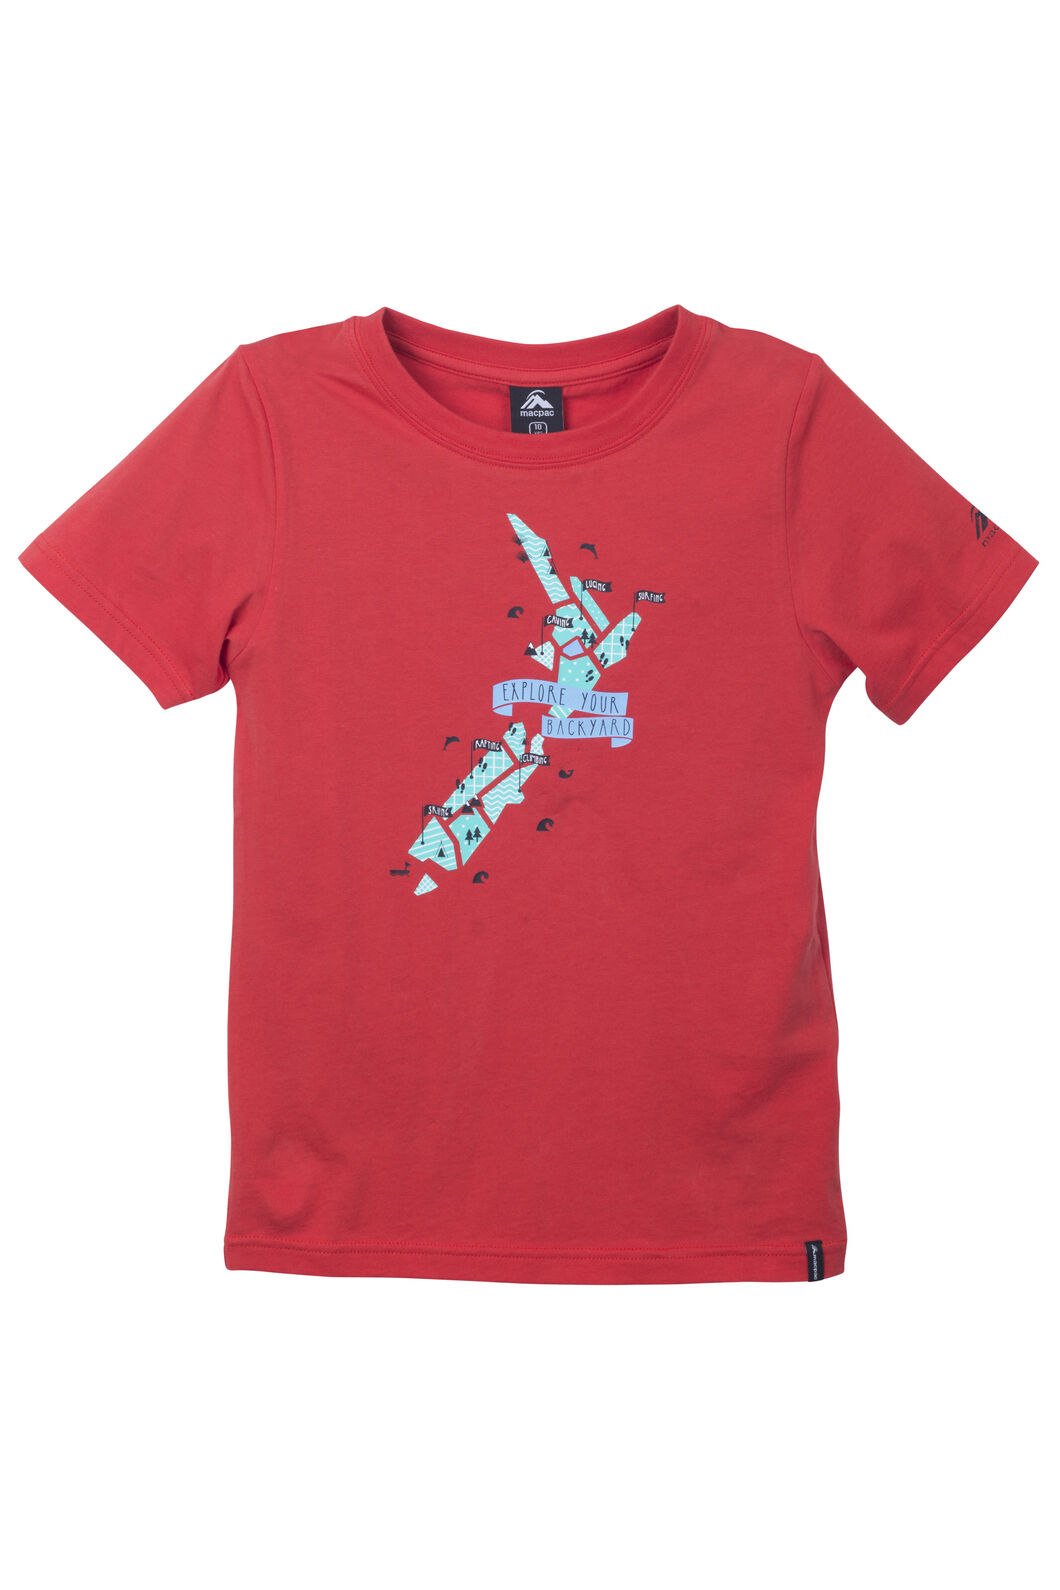 NZ Adventure Organic Cotton Tee - Kids', Molton Lava, hi-res